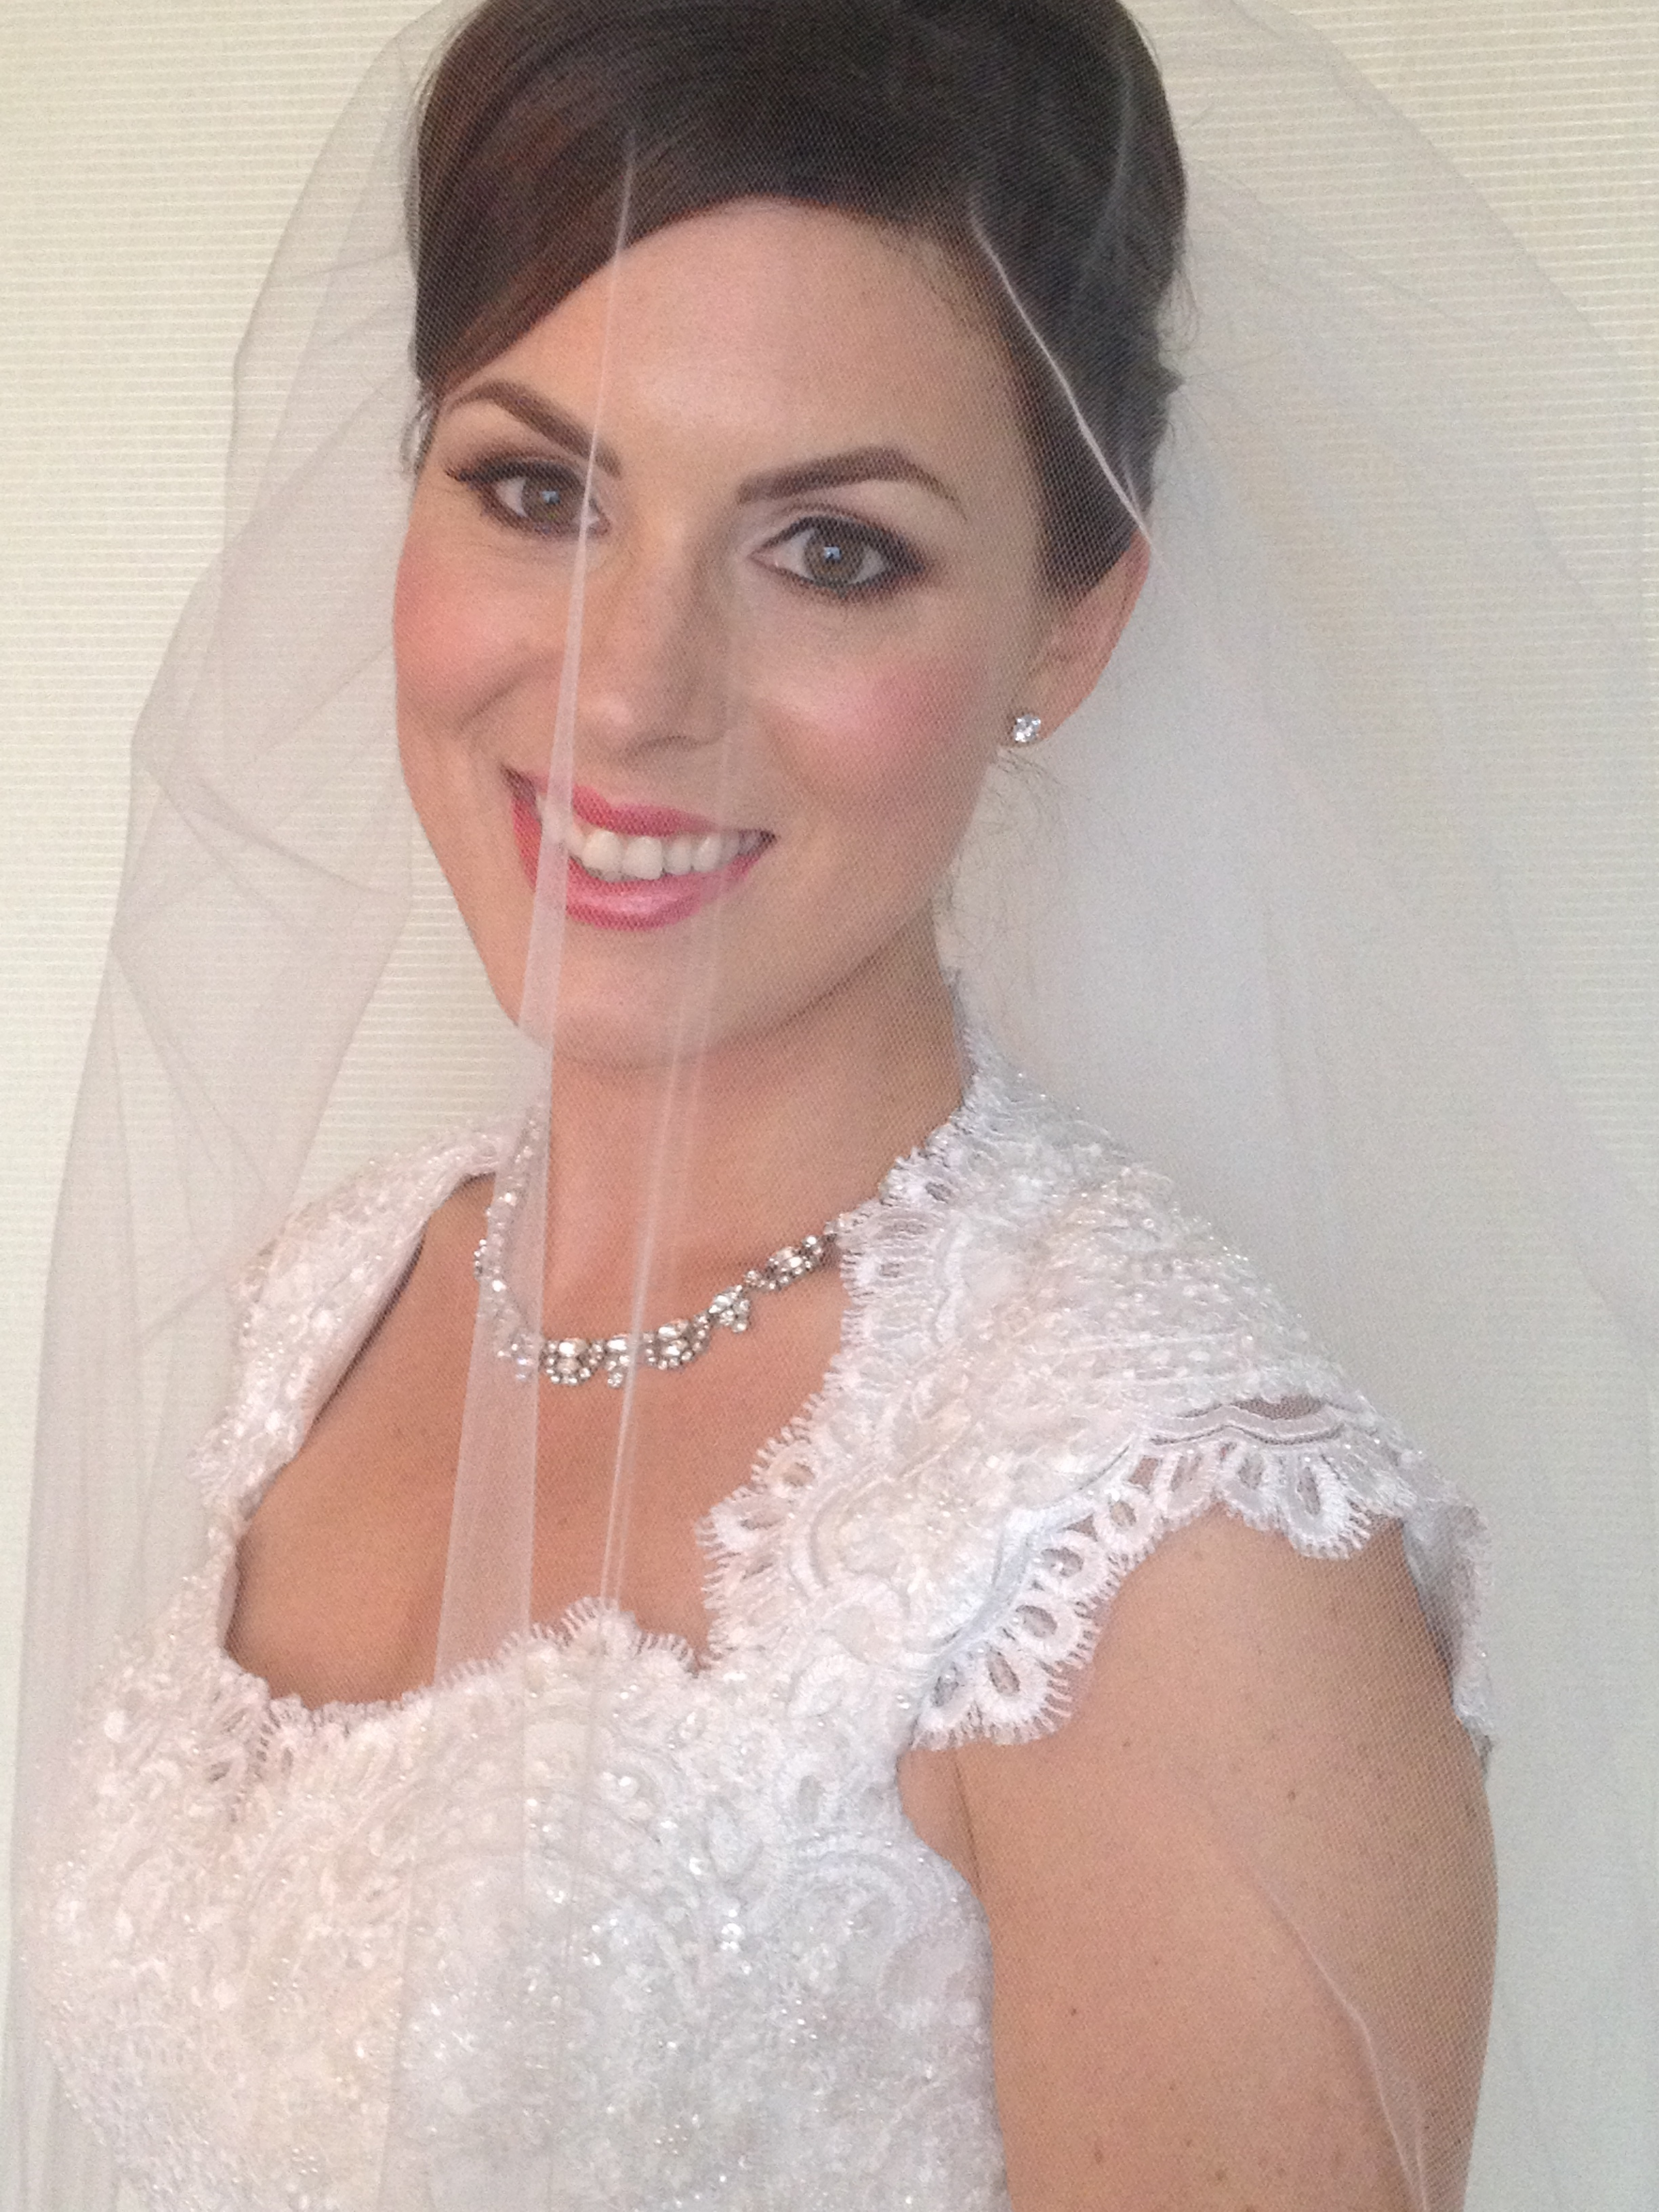 Snapped this lovely right before her ceremony. Makeup by Maya Goldenberg.